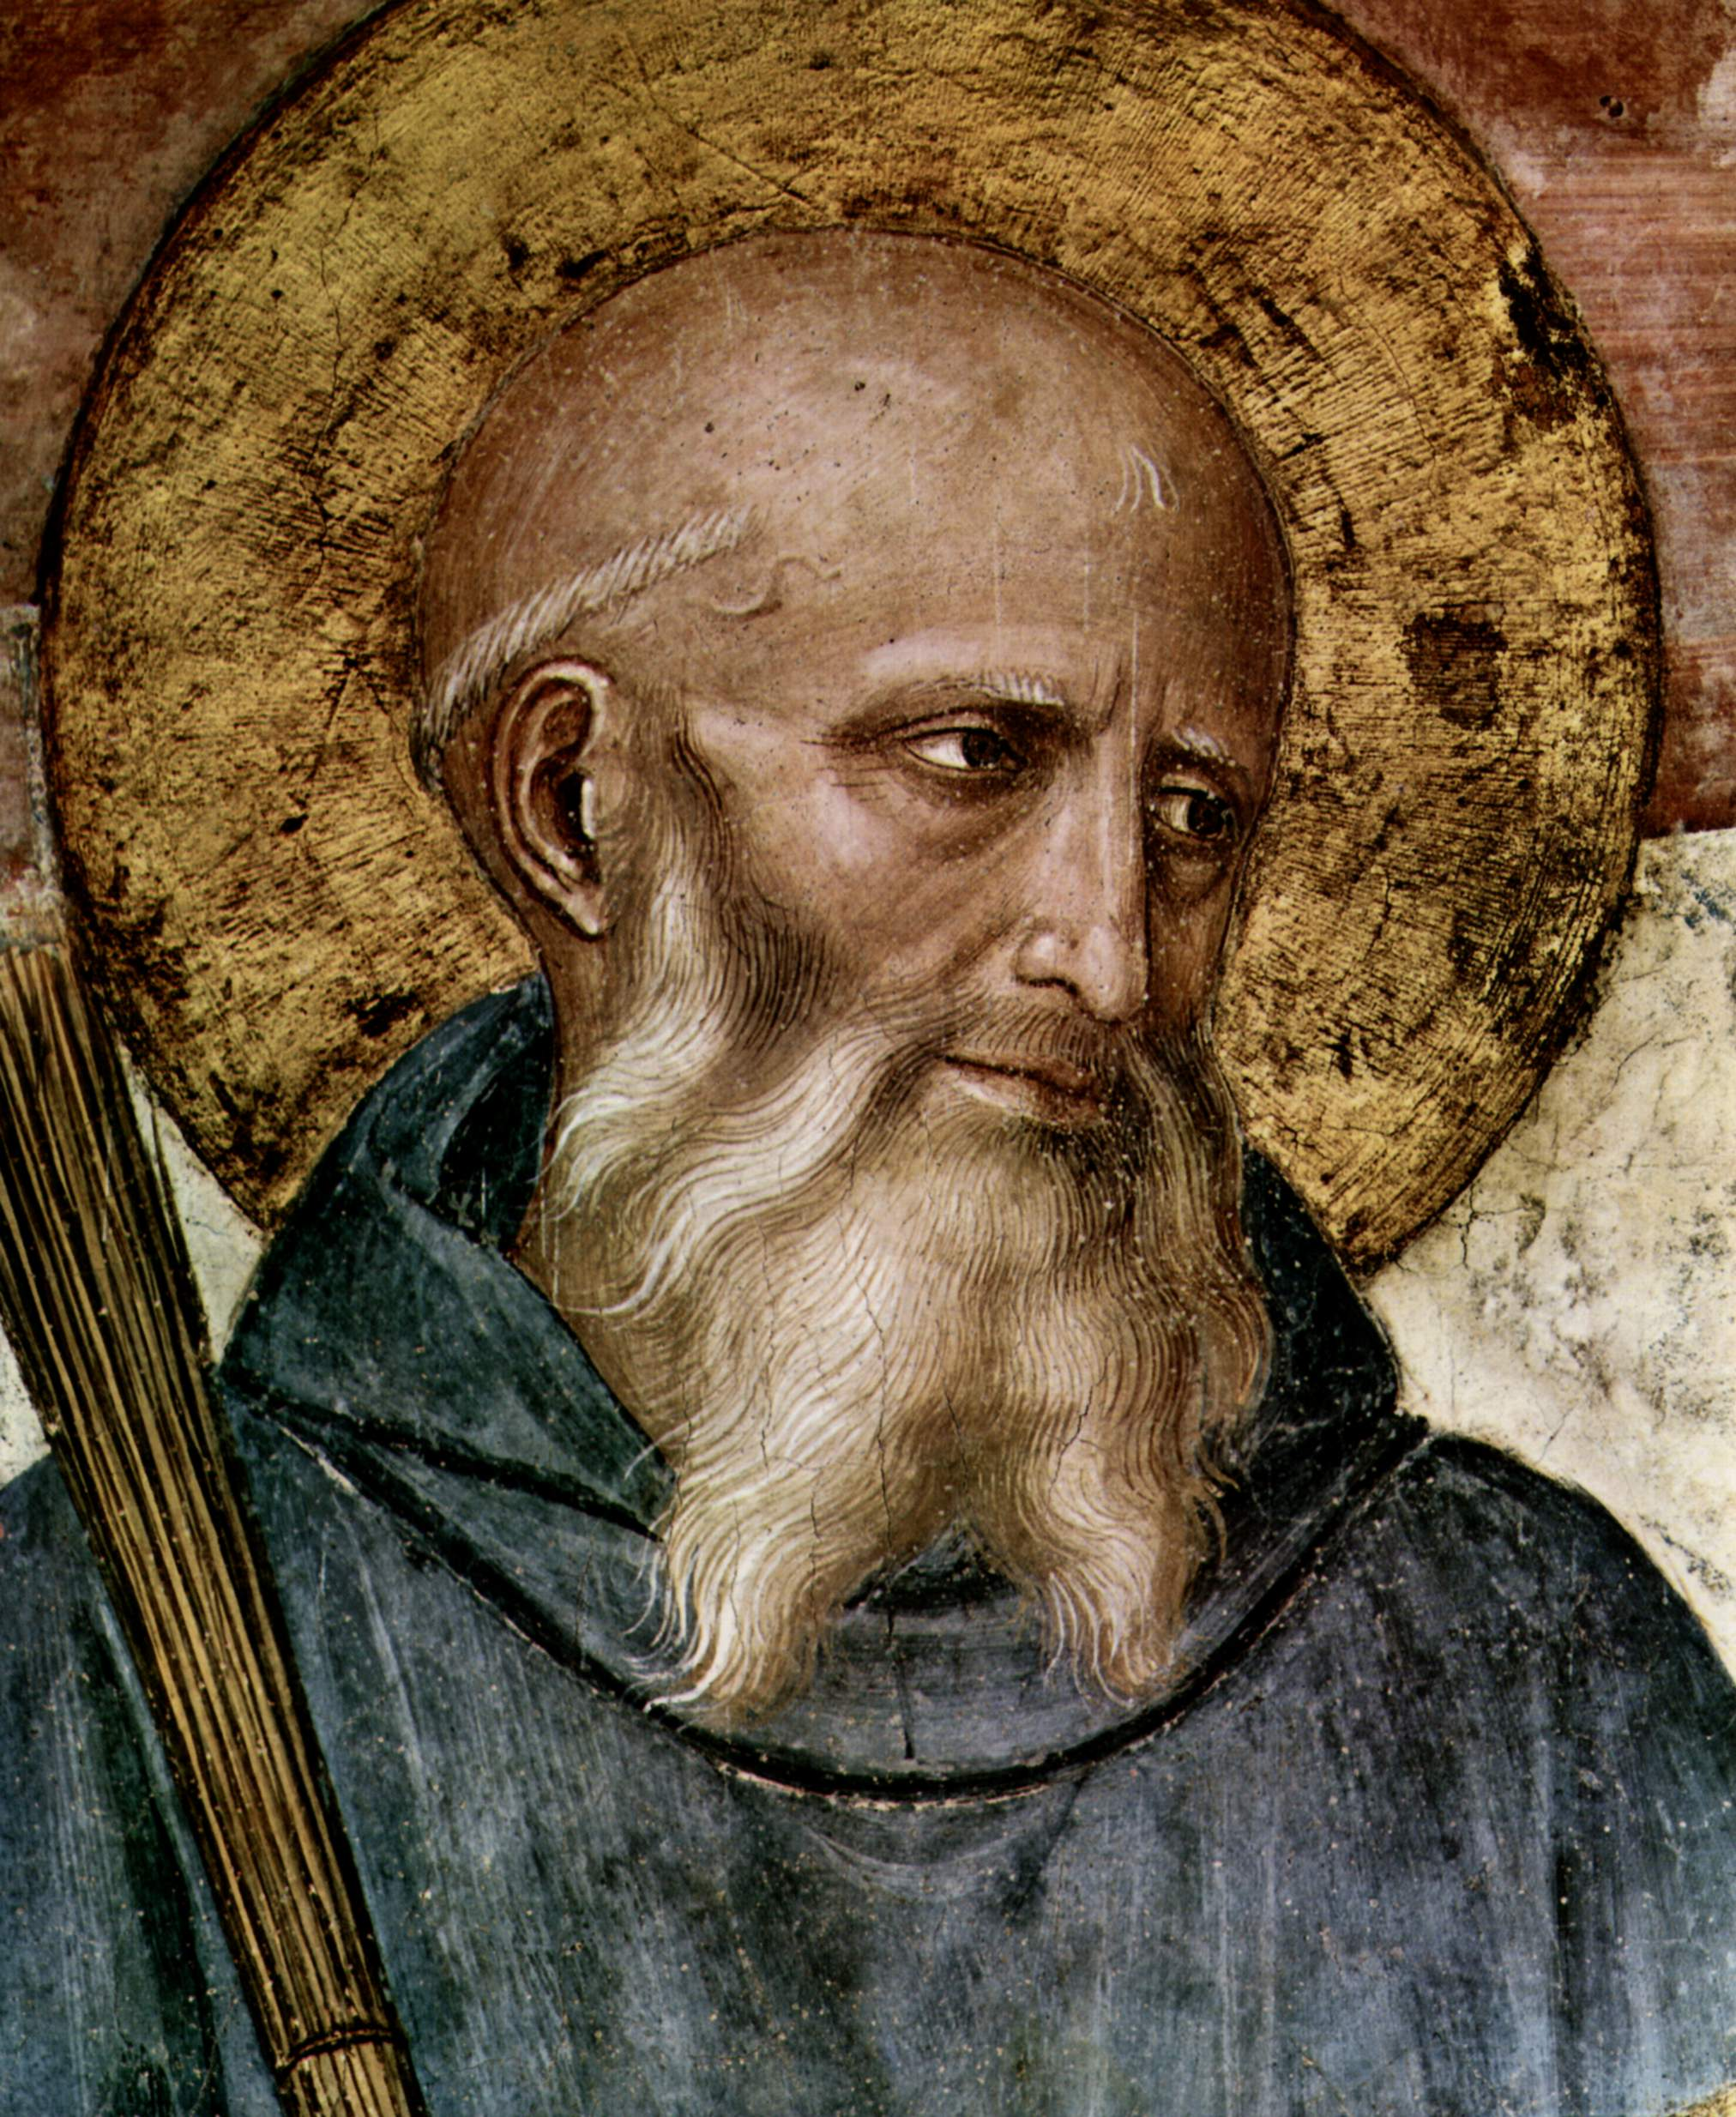 Saint Benedict, father of Western monasticism and author of Rule of St Benedict. Detail from fresco by Fra Angelico, c. 1437–46.